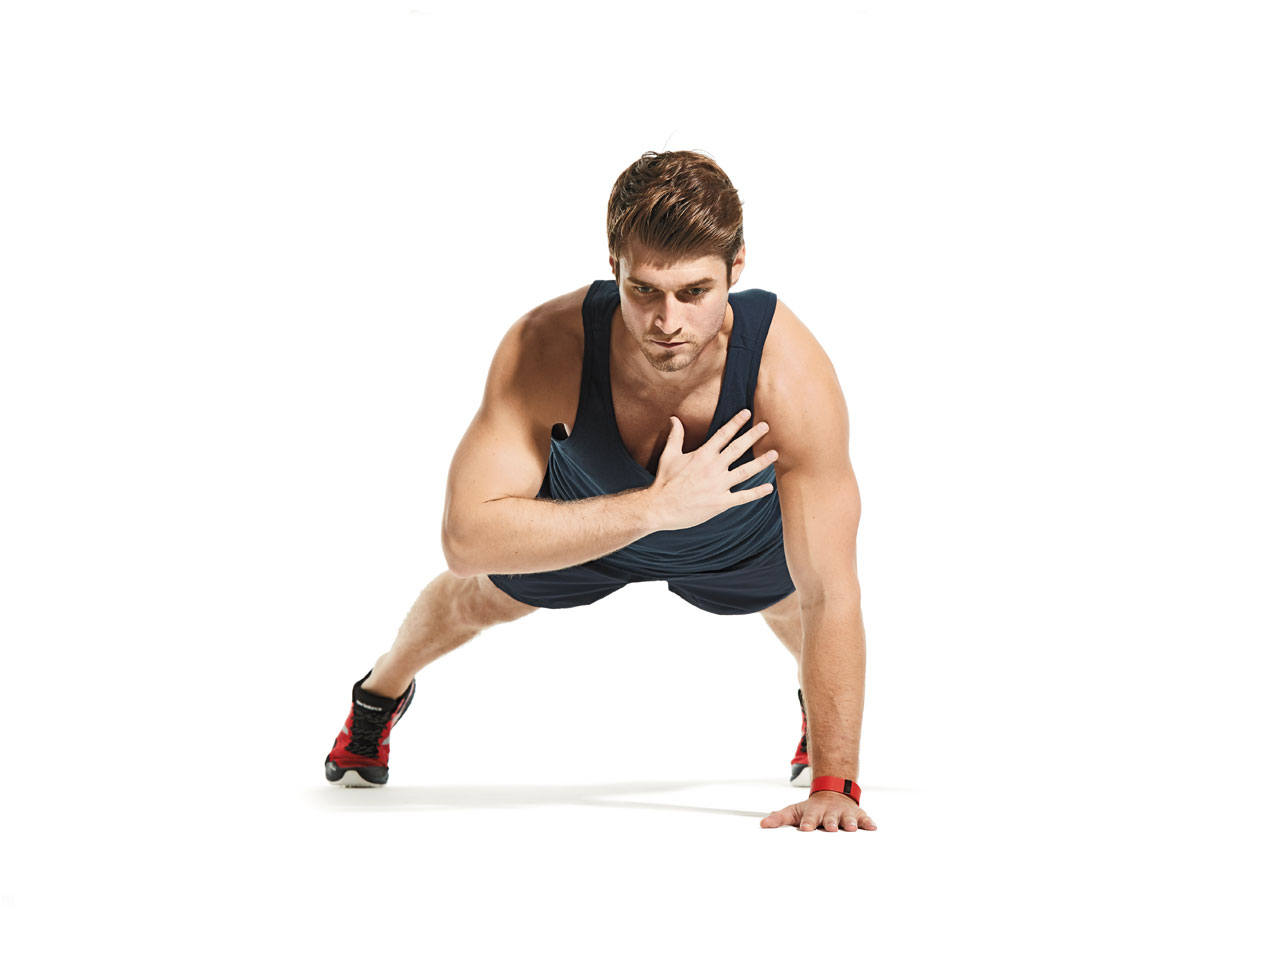 Image result for Shoulder tap  plank male